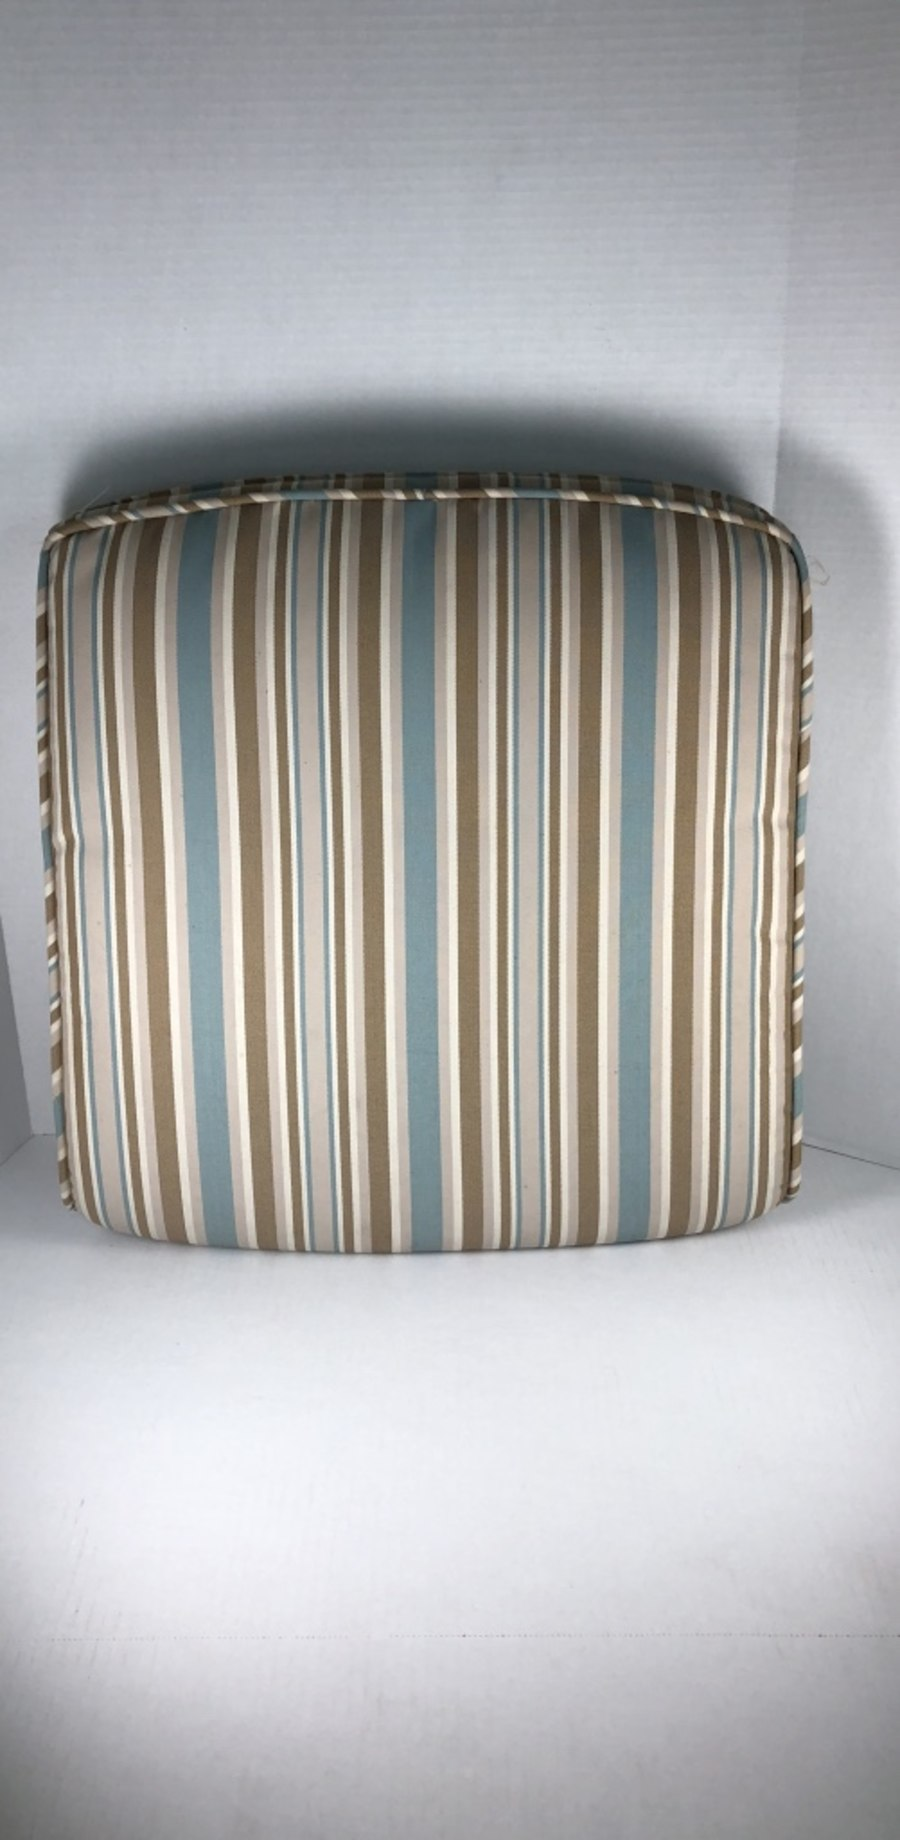 Hampton Bay 4 PC Chair Seat Cushions